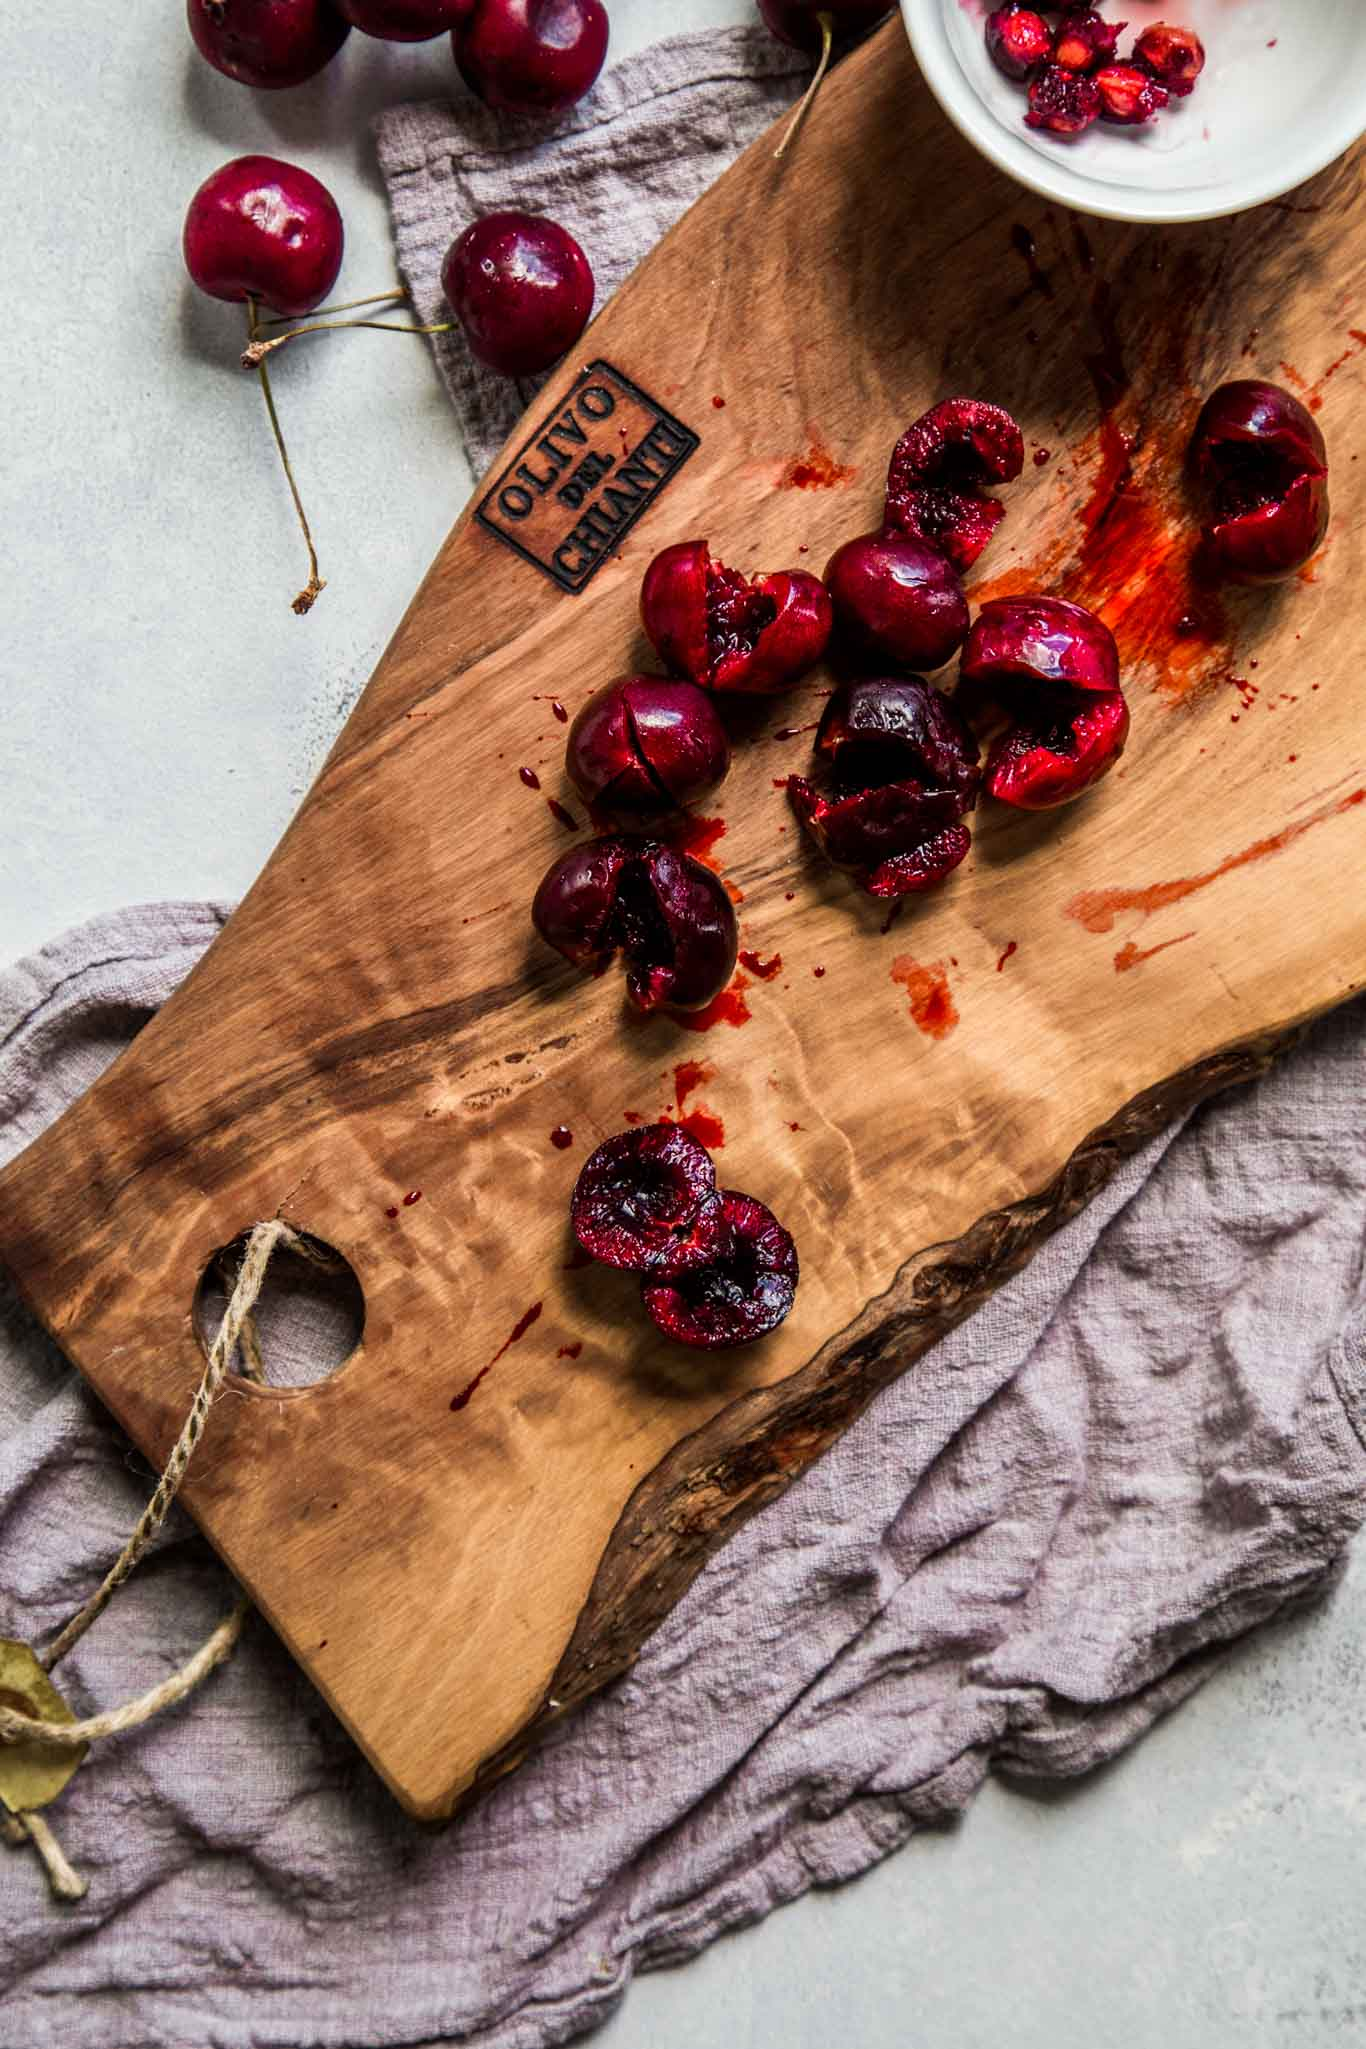 Cherries on a cutting board being pitted.